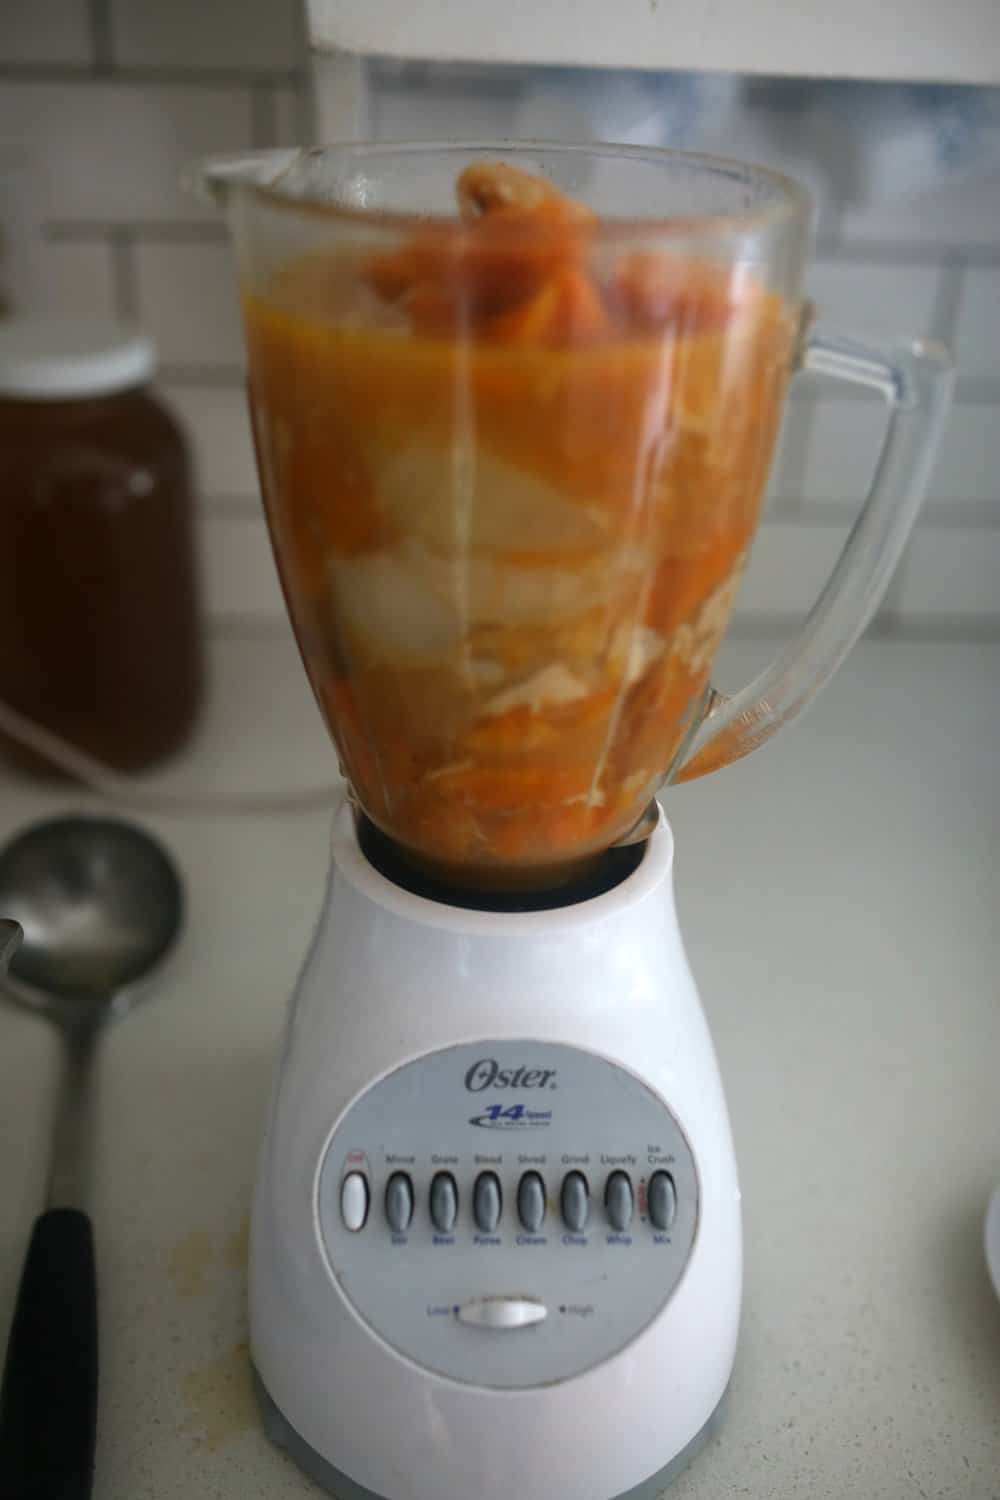 roasted butternut squash soup in a blender to puree the veggies into a creamy soup